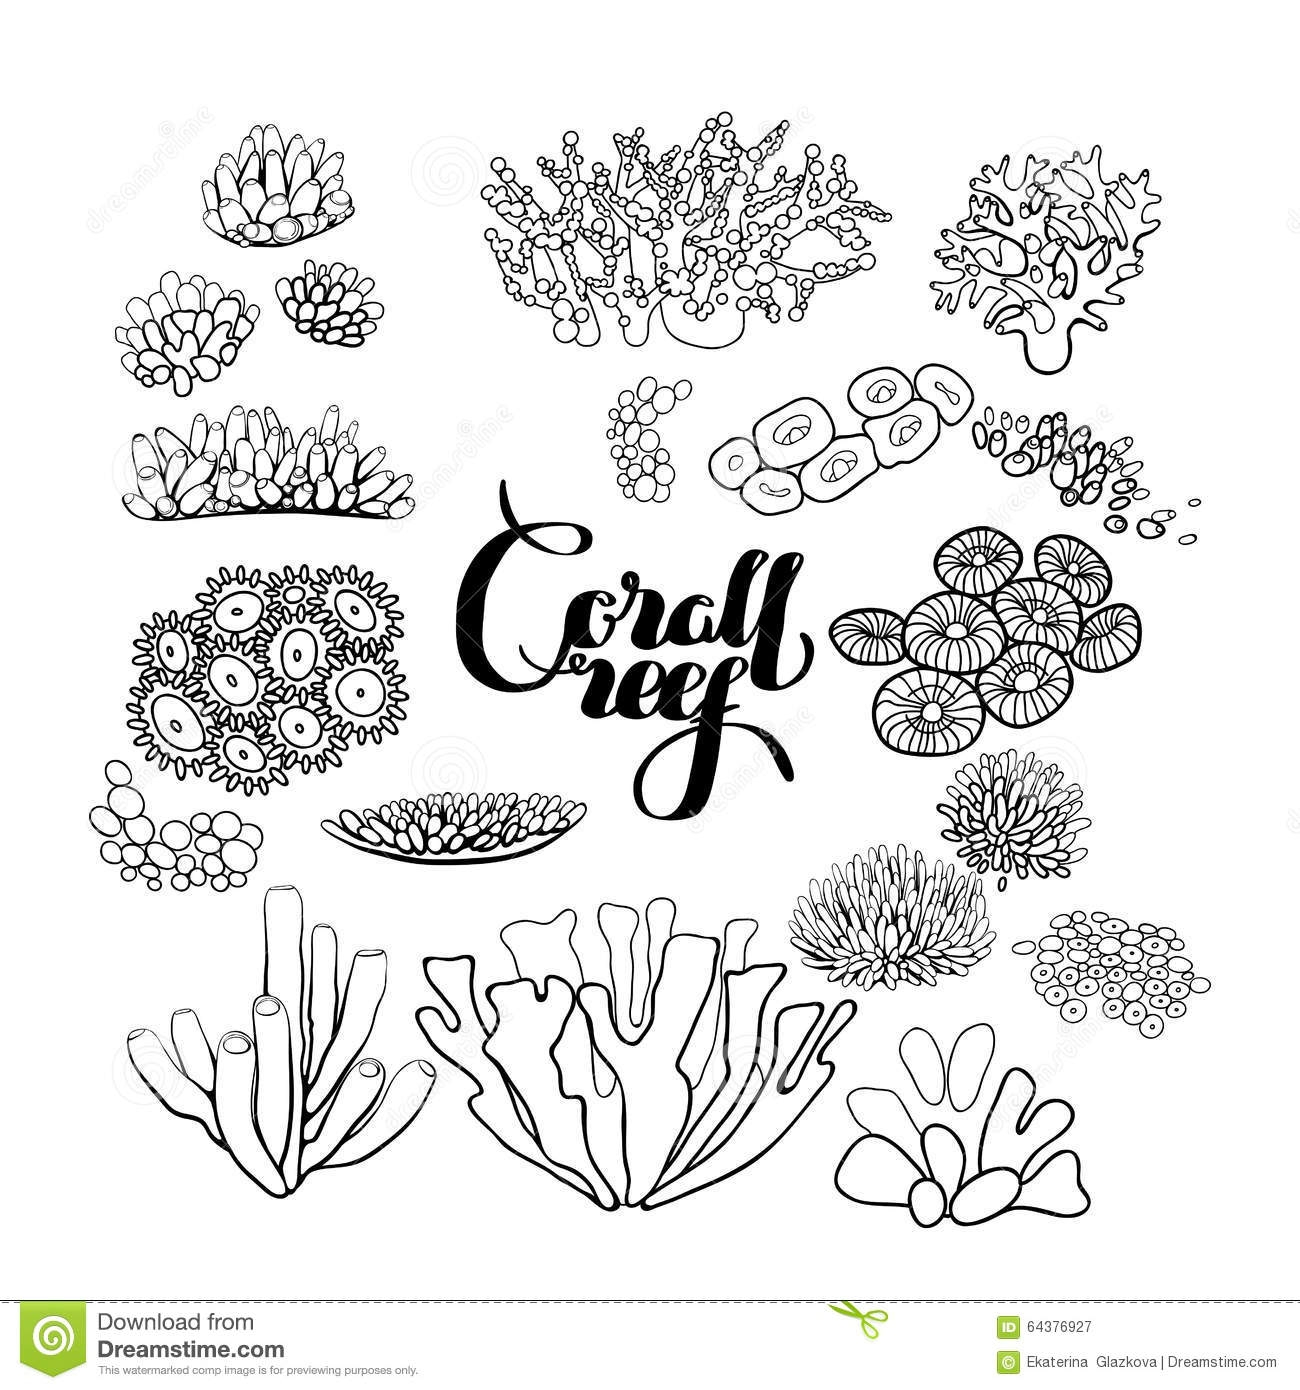 seaweed coloring pages - stock illustration collection coral reef elements ocean plants drawn line art style white coloring page design image